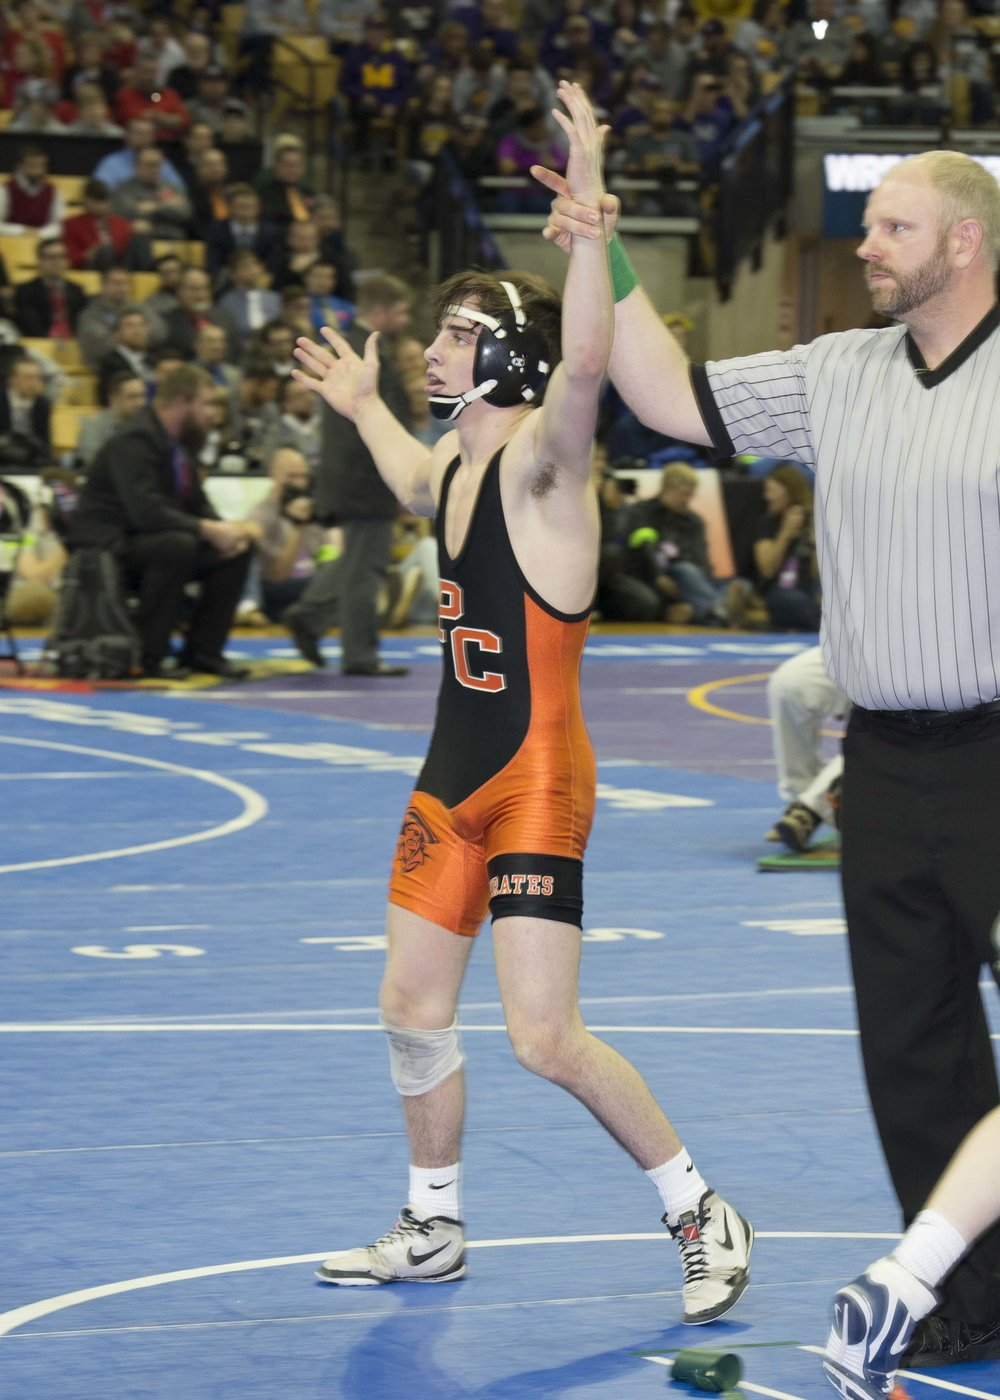 DAVID BREDESON/Special to the Citizen Platte County senior Cody Phippen has his arm raised by the official after winning the Class 3 126-pound championship at the Missouri State Wrestling Championship on Saturday, Feb. 17 at Mizzou Arena in Columbia, Mo.